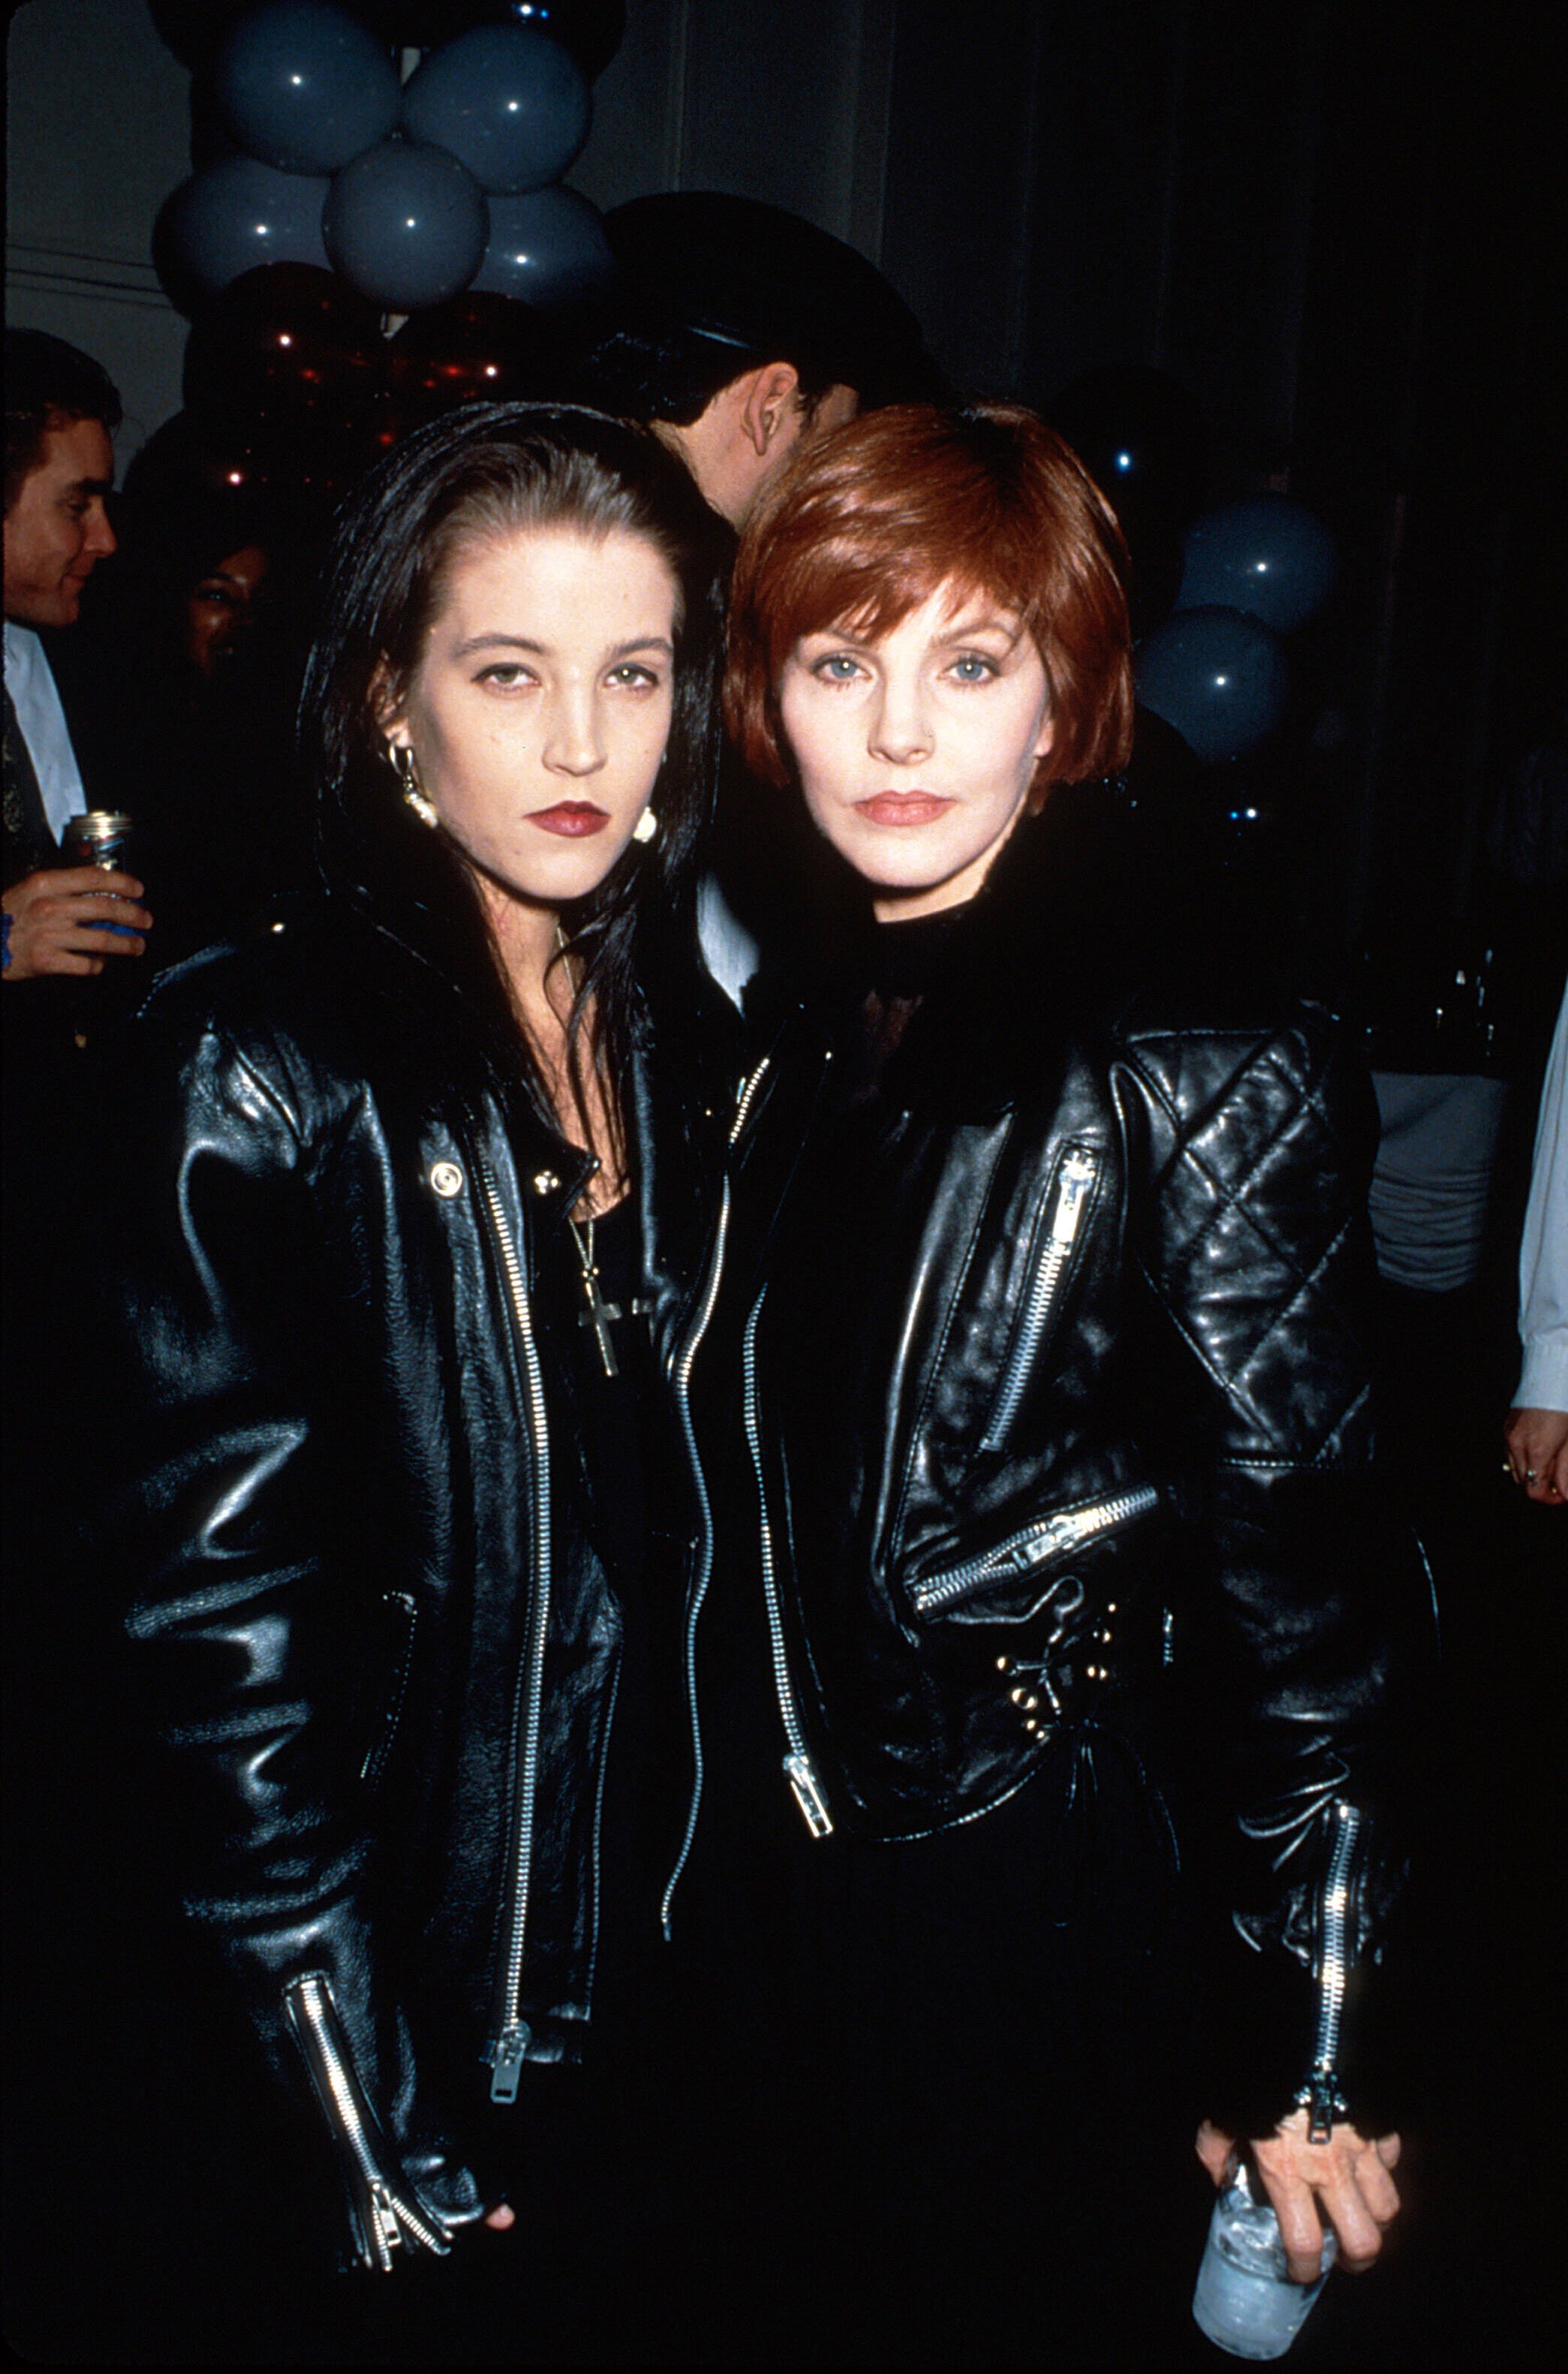 Priscilla Presley S Relationship With Daughter Lisa Marie Has Been